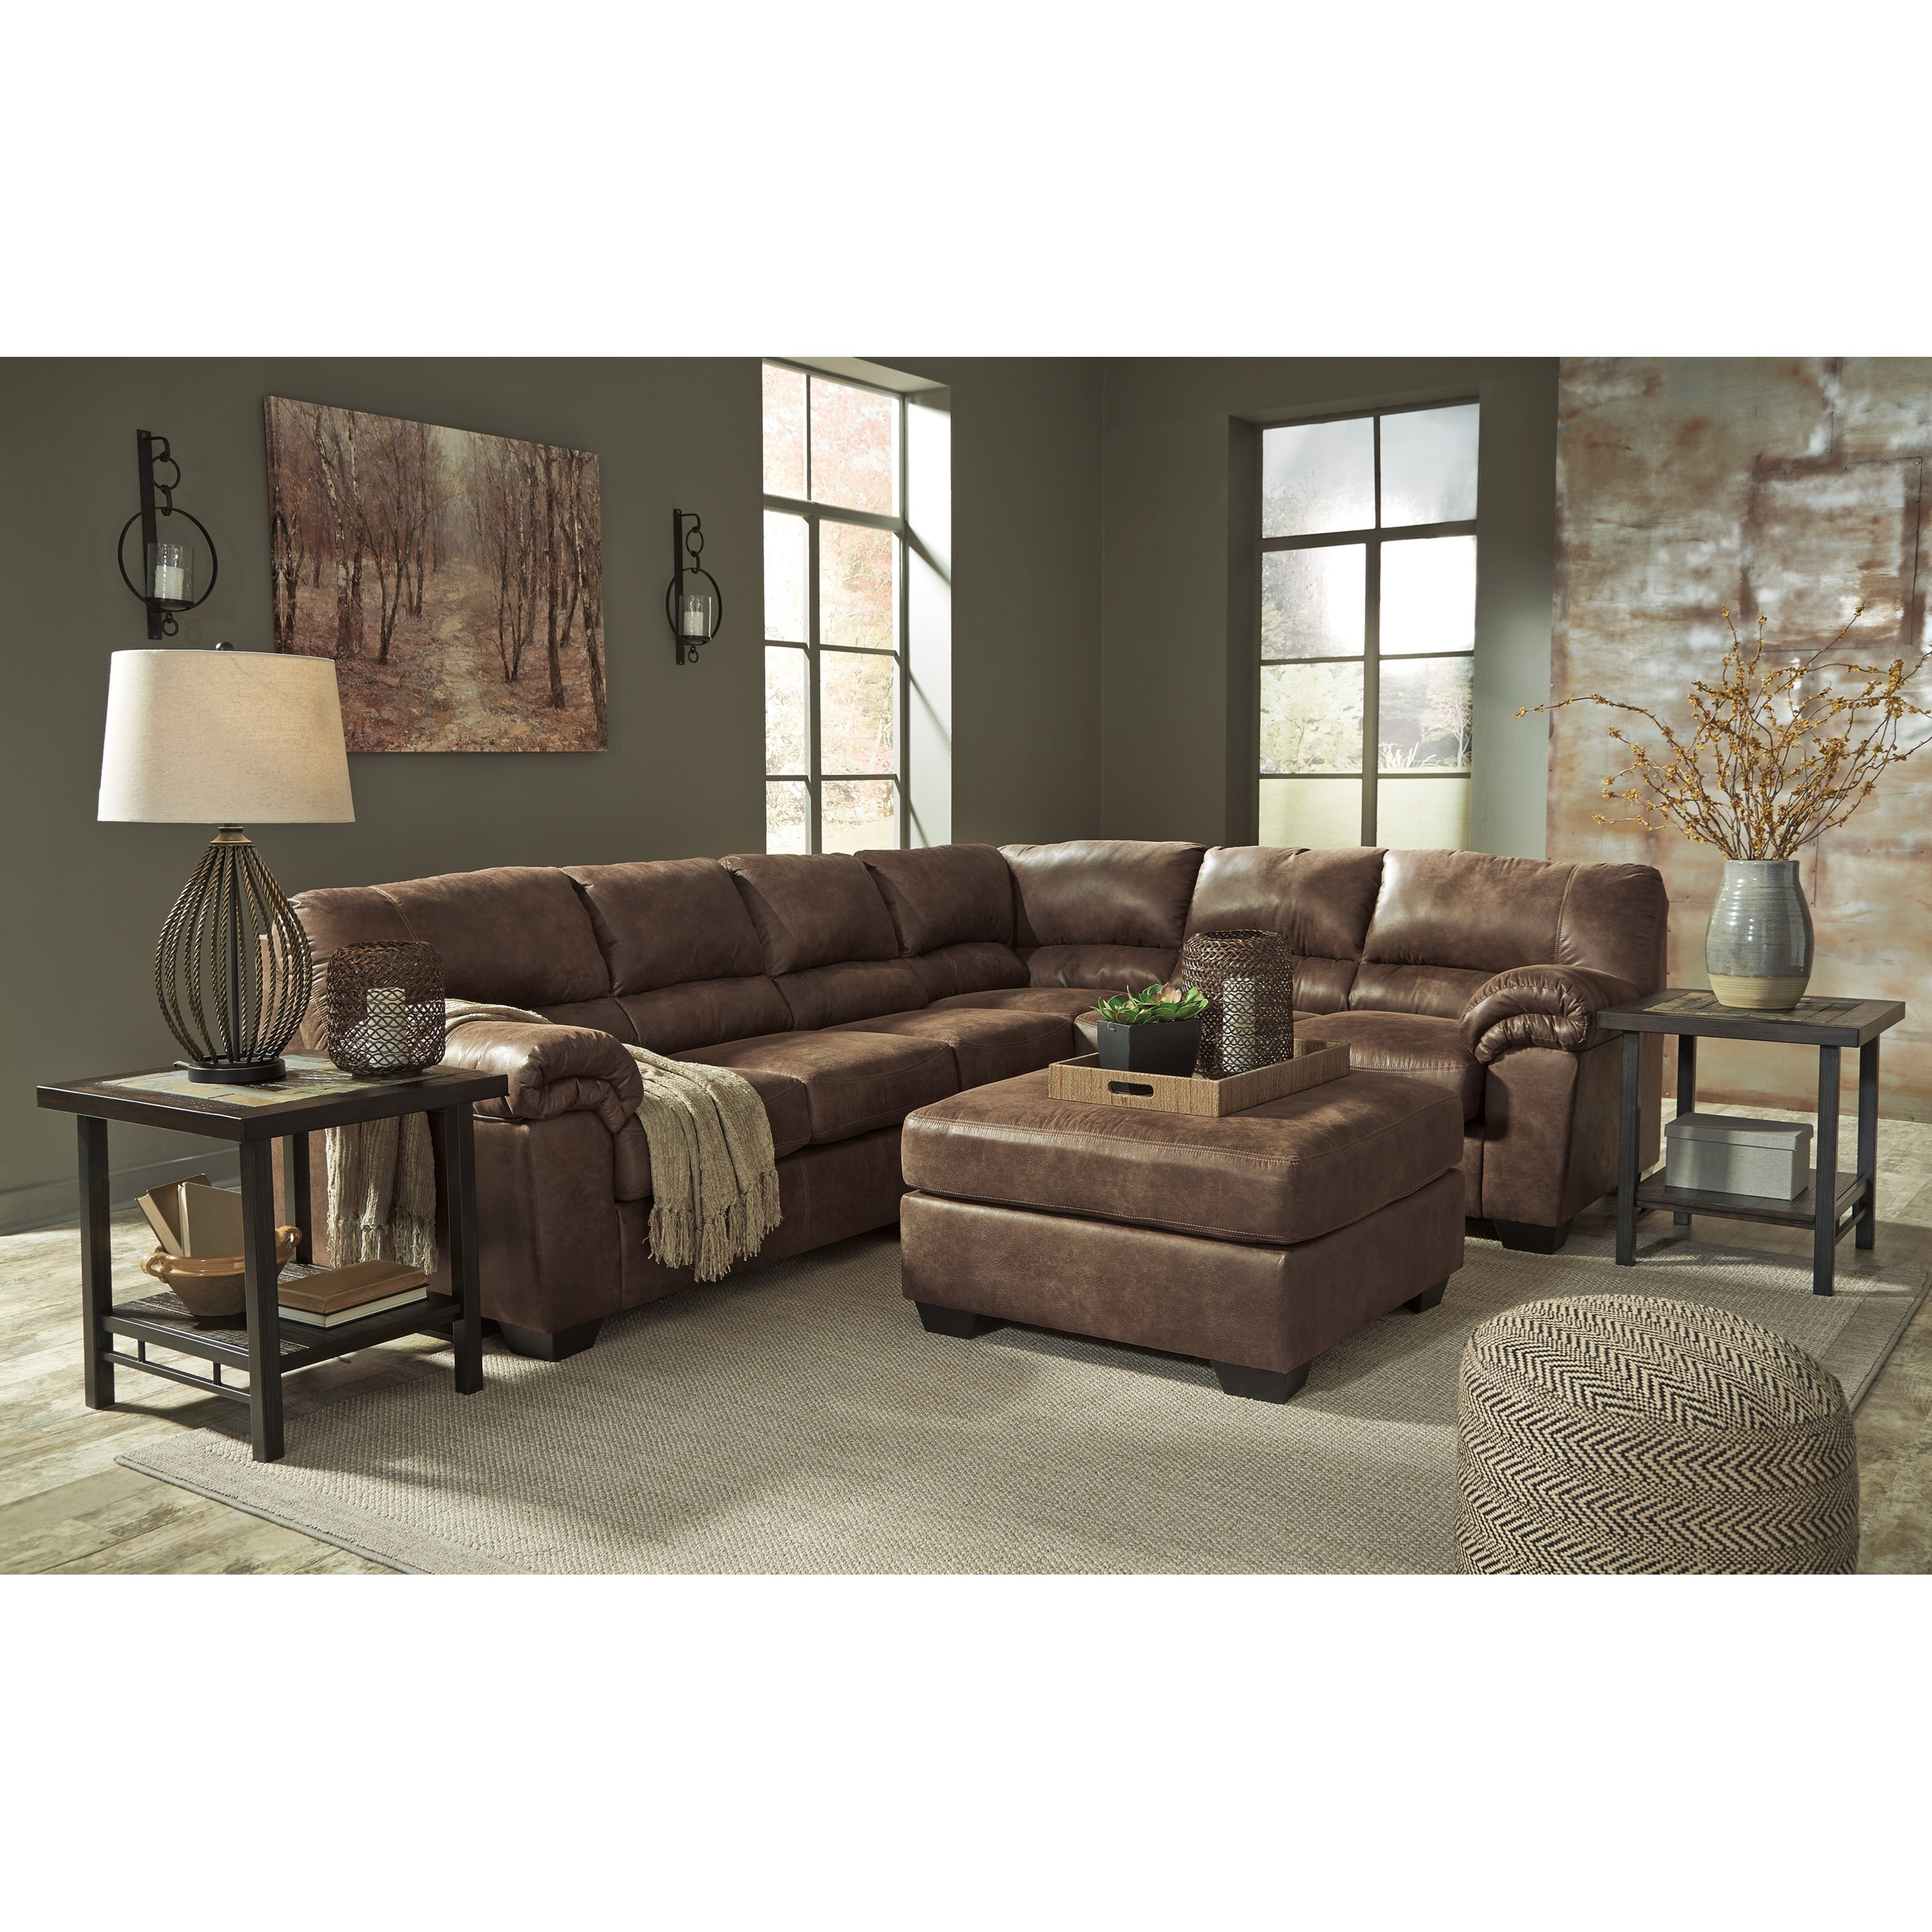 Bladen Stationary Living Room Group by Signature Design by Ashley at Household Furniture